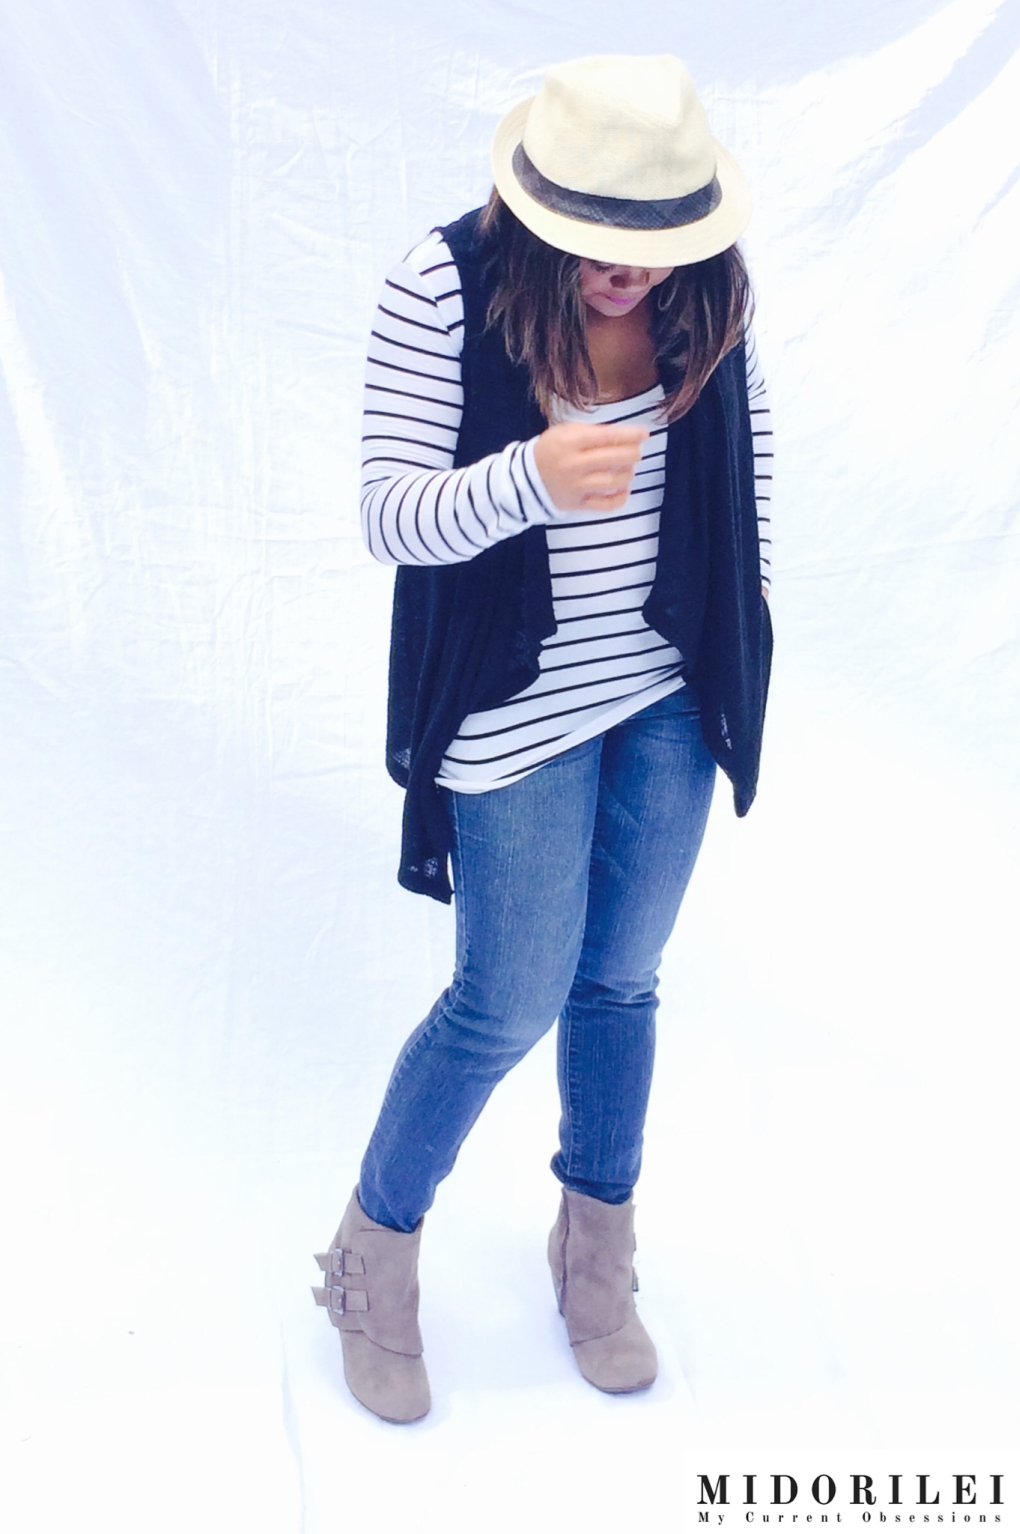 Midorilei wears taupe ankle booties, skinny jeans, a black and white striped shirt, a black vest, and a fedora